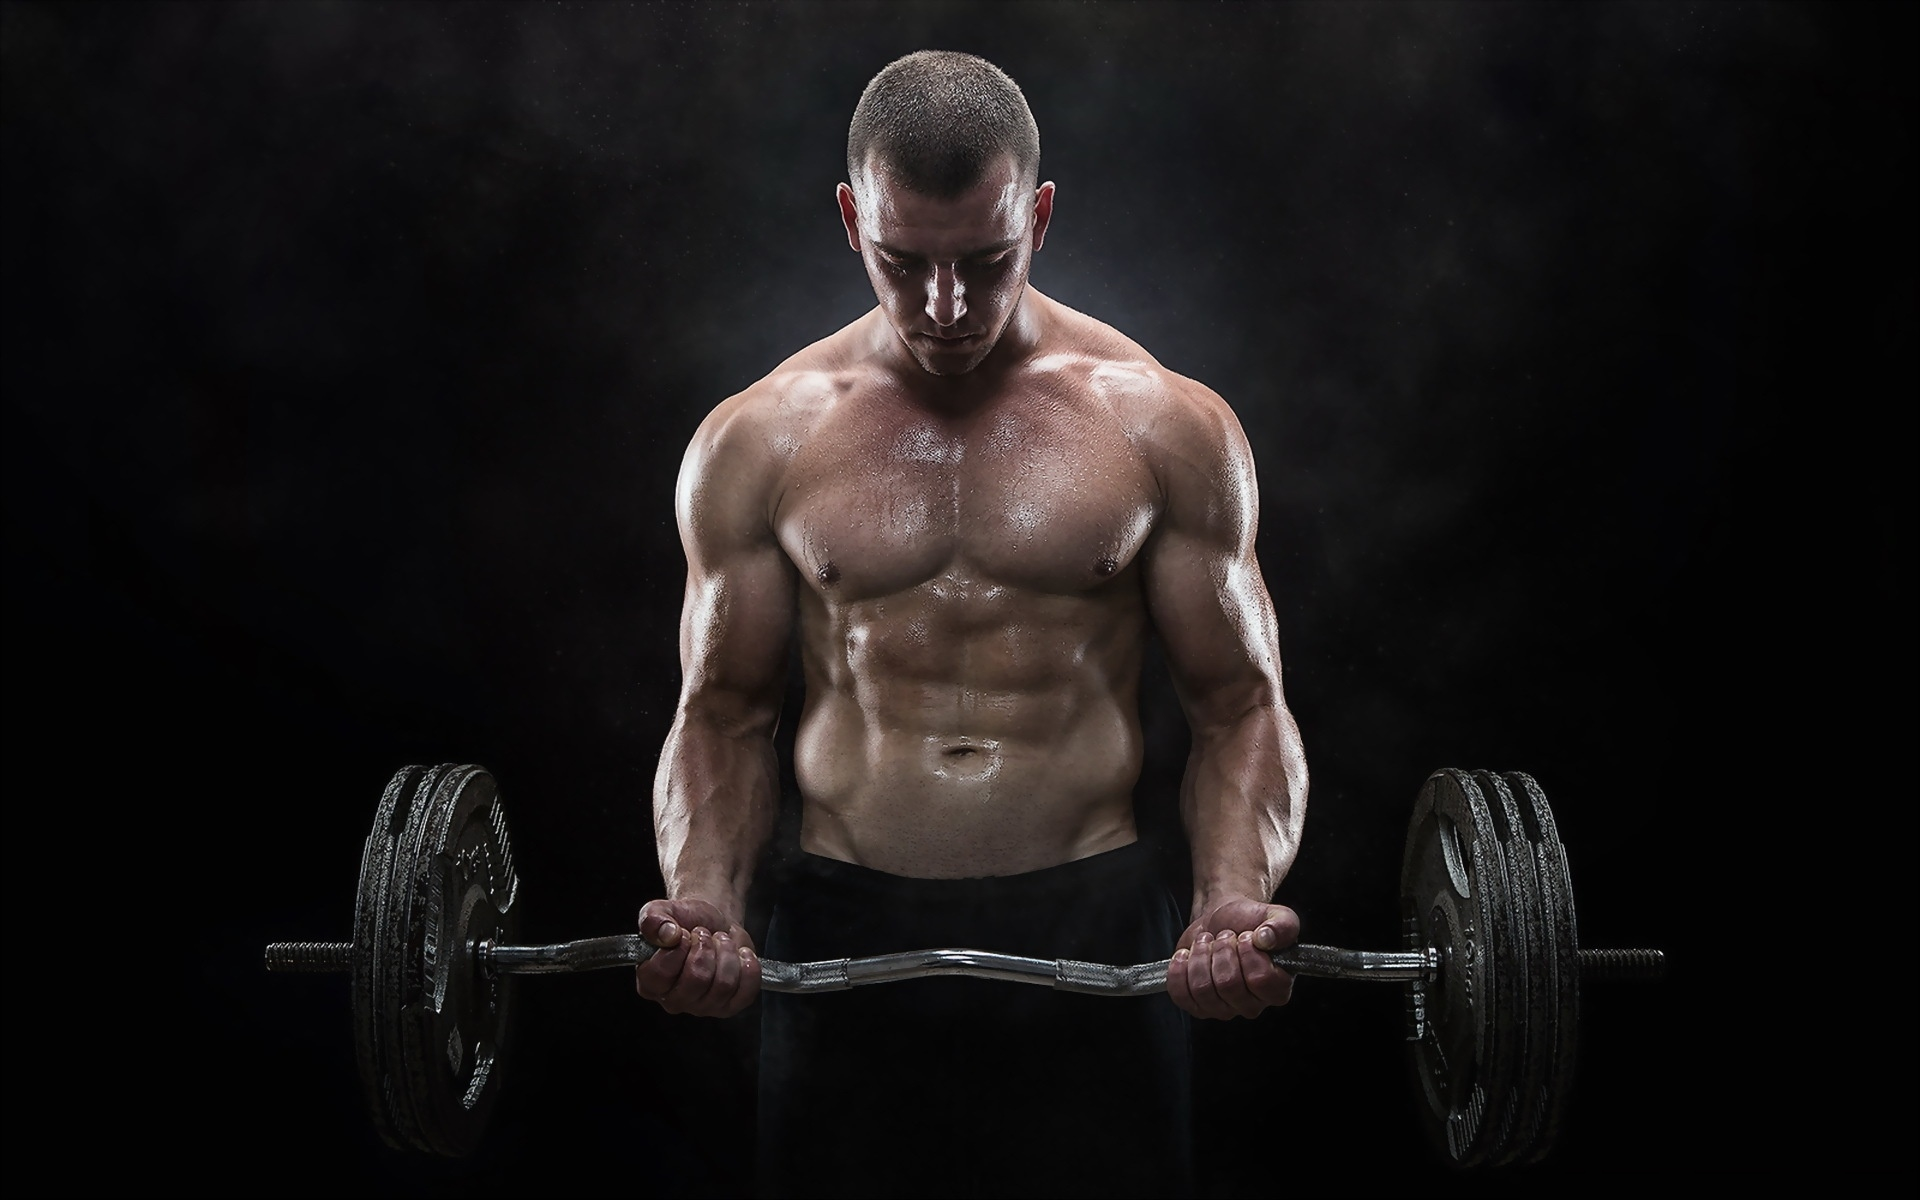 Man with barbell, bodybuilding - HD wallpaper download. Wallpapers ...